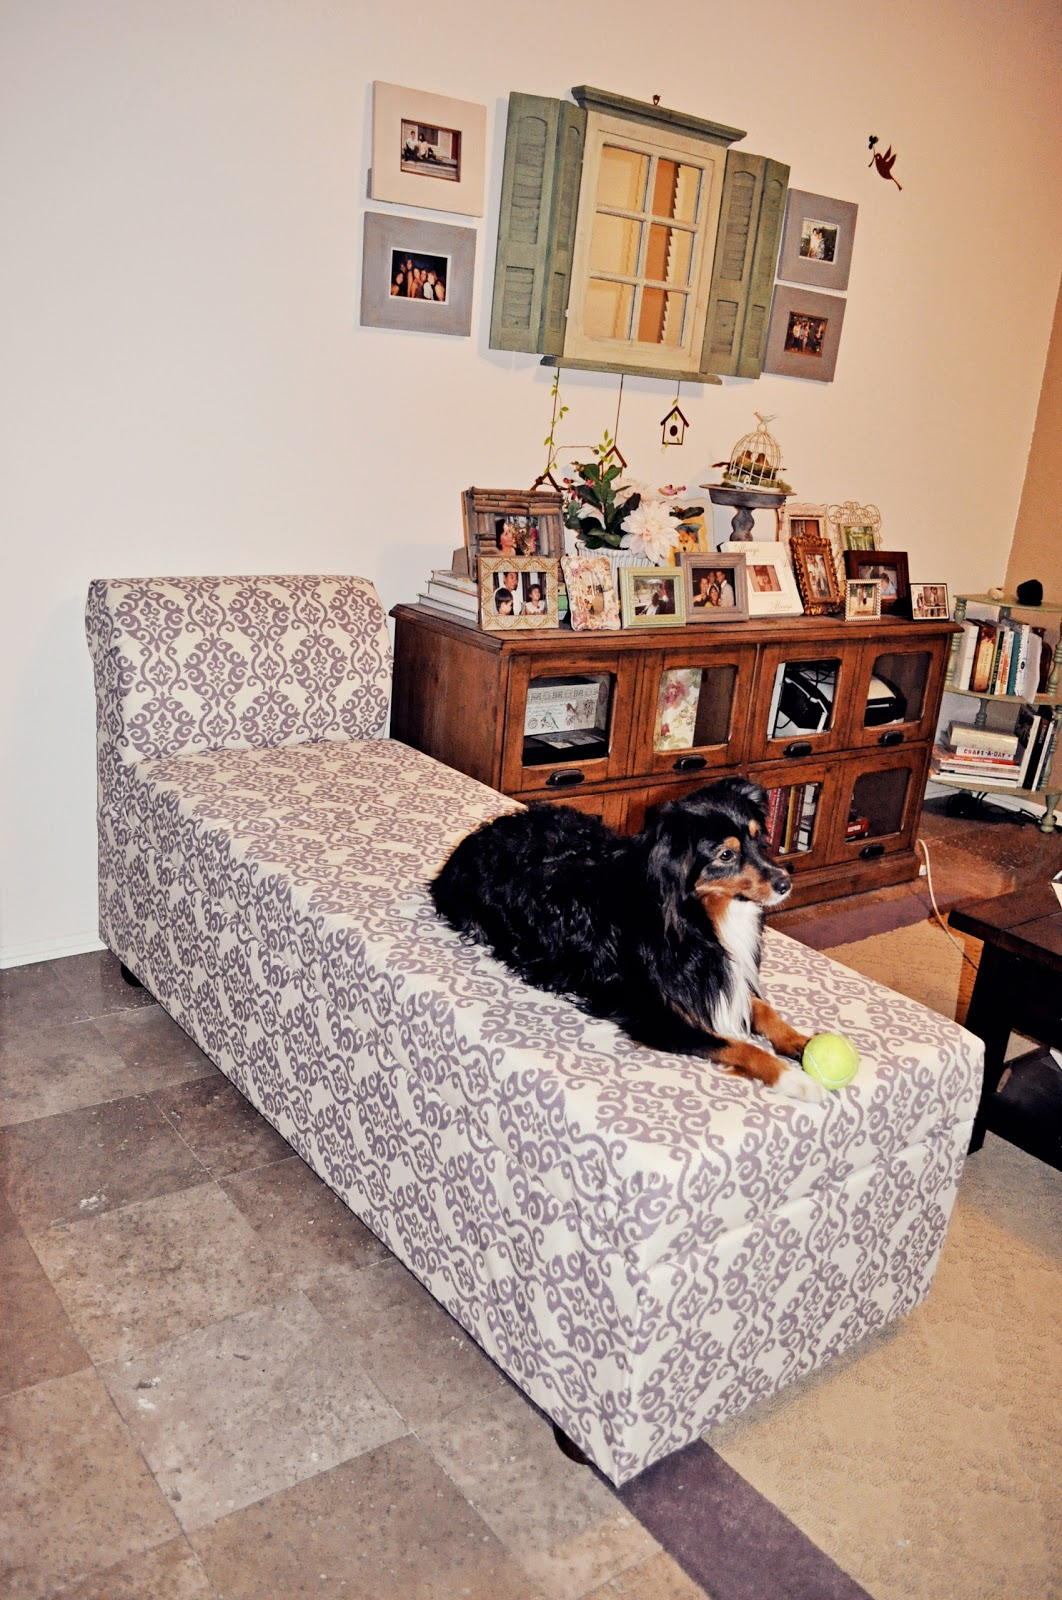 It All Started One Night Just Web Surfing And I Stumbled On To Lazy Liz On  Less Blog And Found This Awesome Plan She Had On A Storage Chaise Lounge!